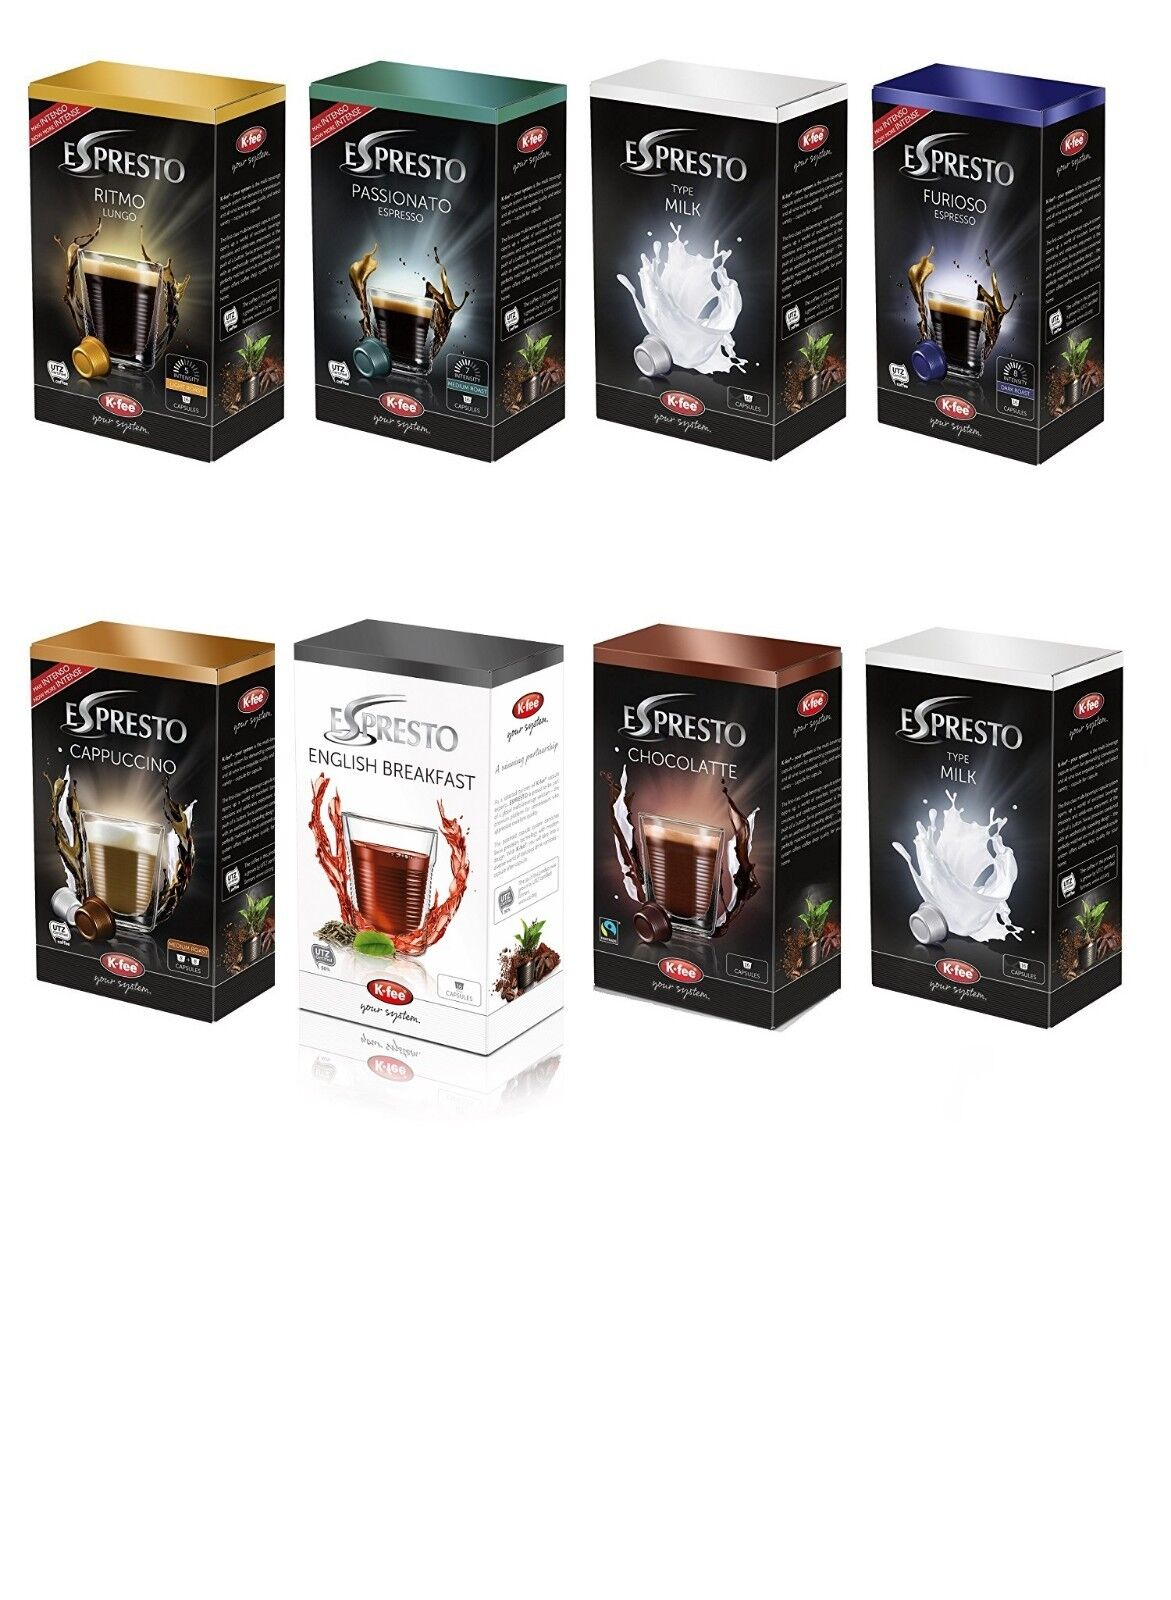 Details About Starbucks Verismo Tesco Podpronto K Fee Espresto Capsules Pods All Flavours